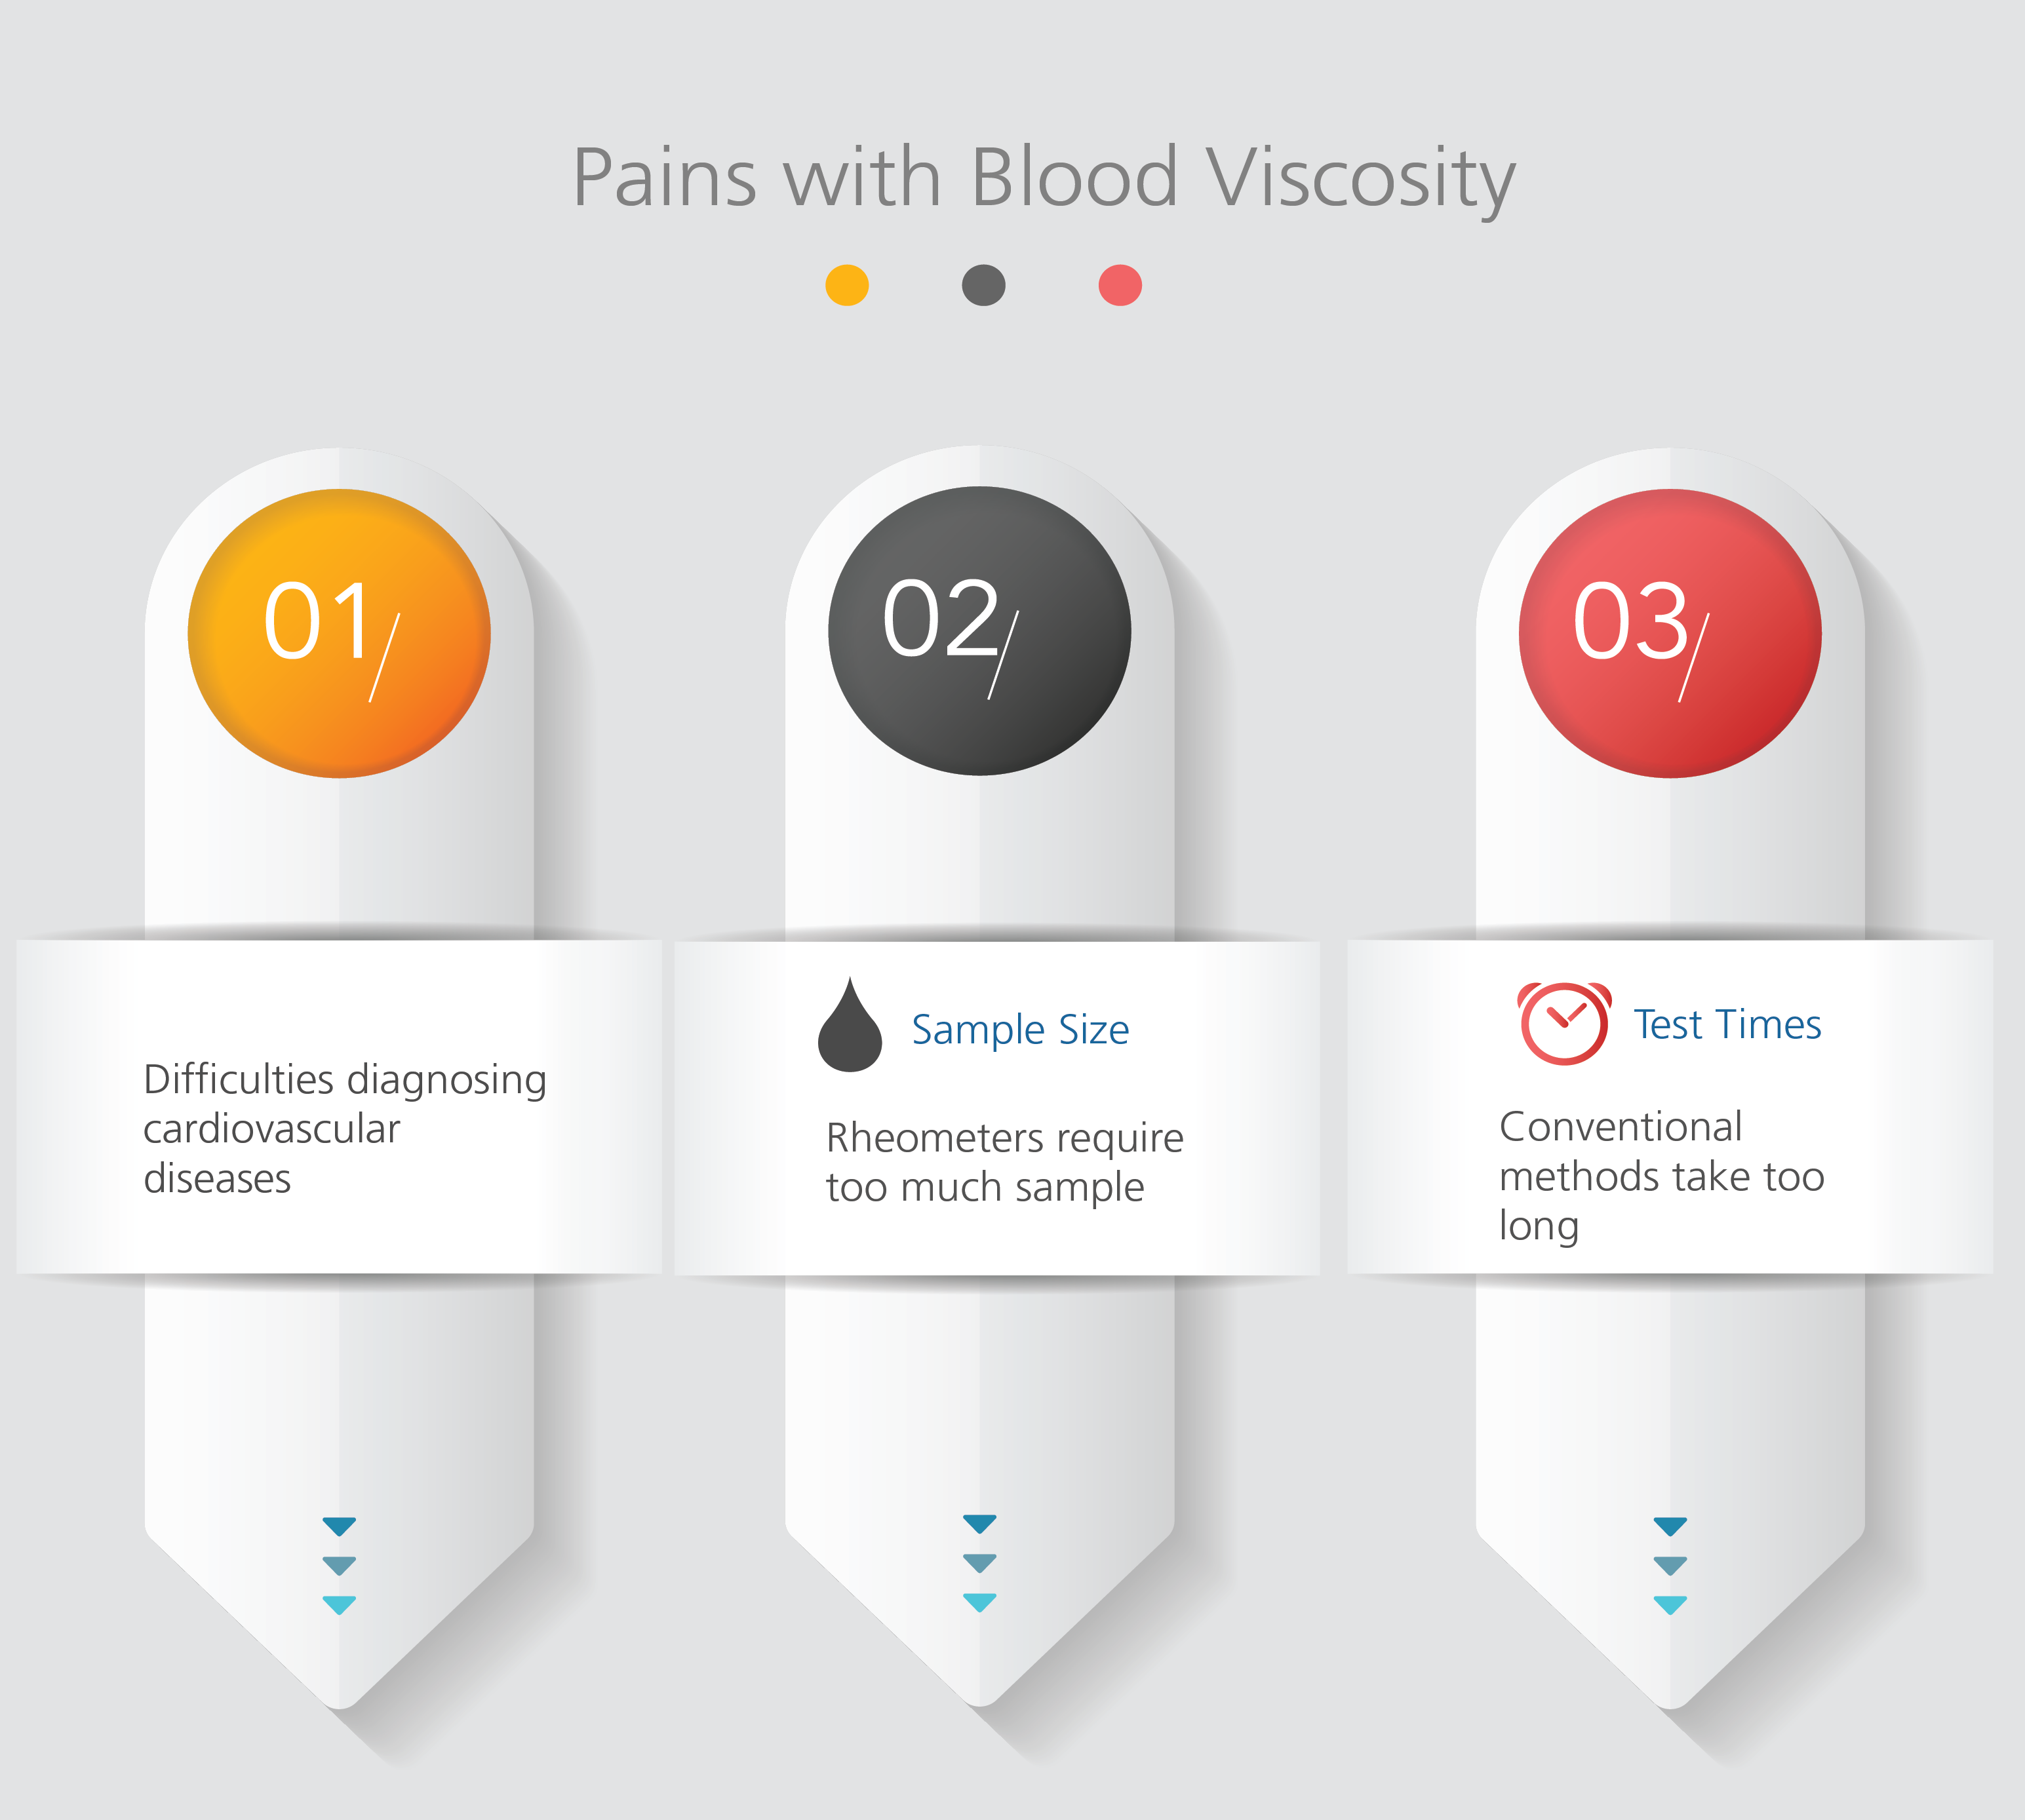 Pains_with_Blood_Viscosity_Serum